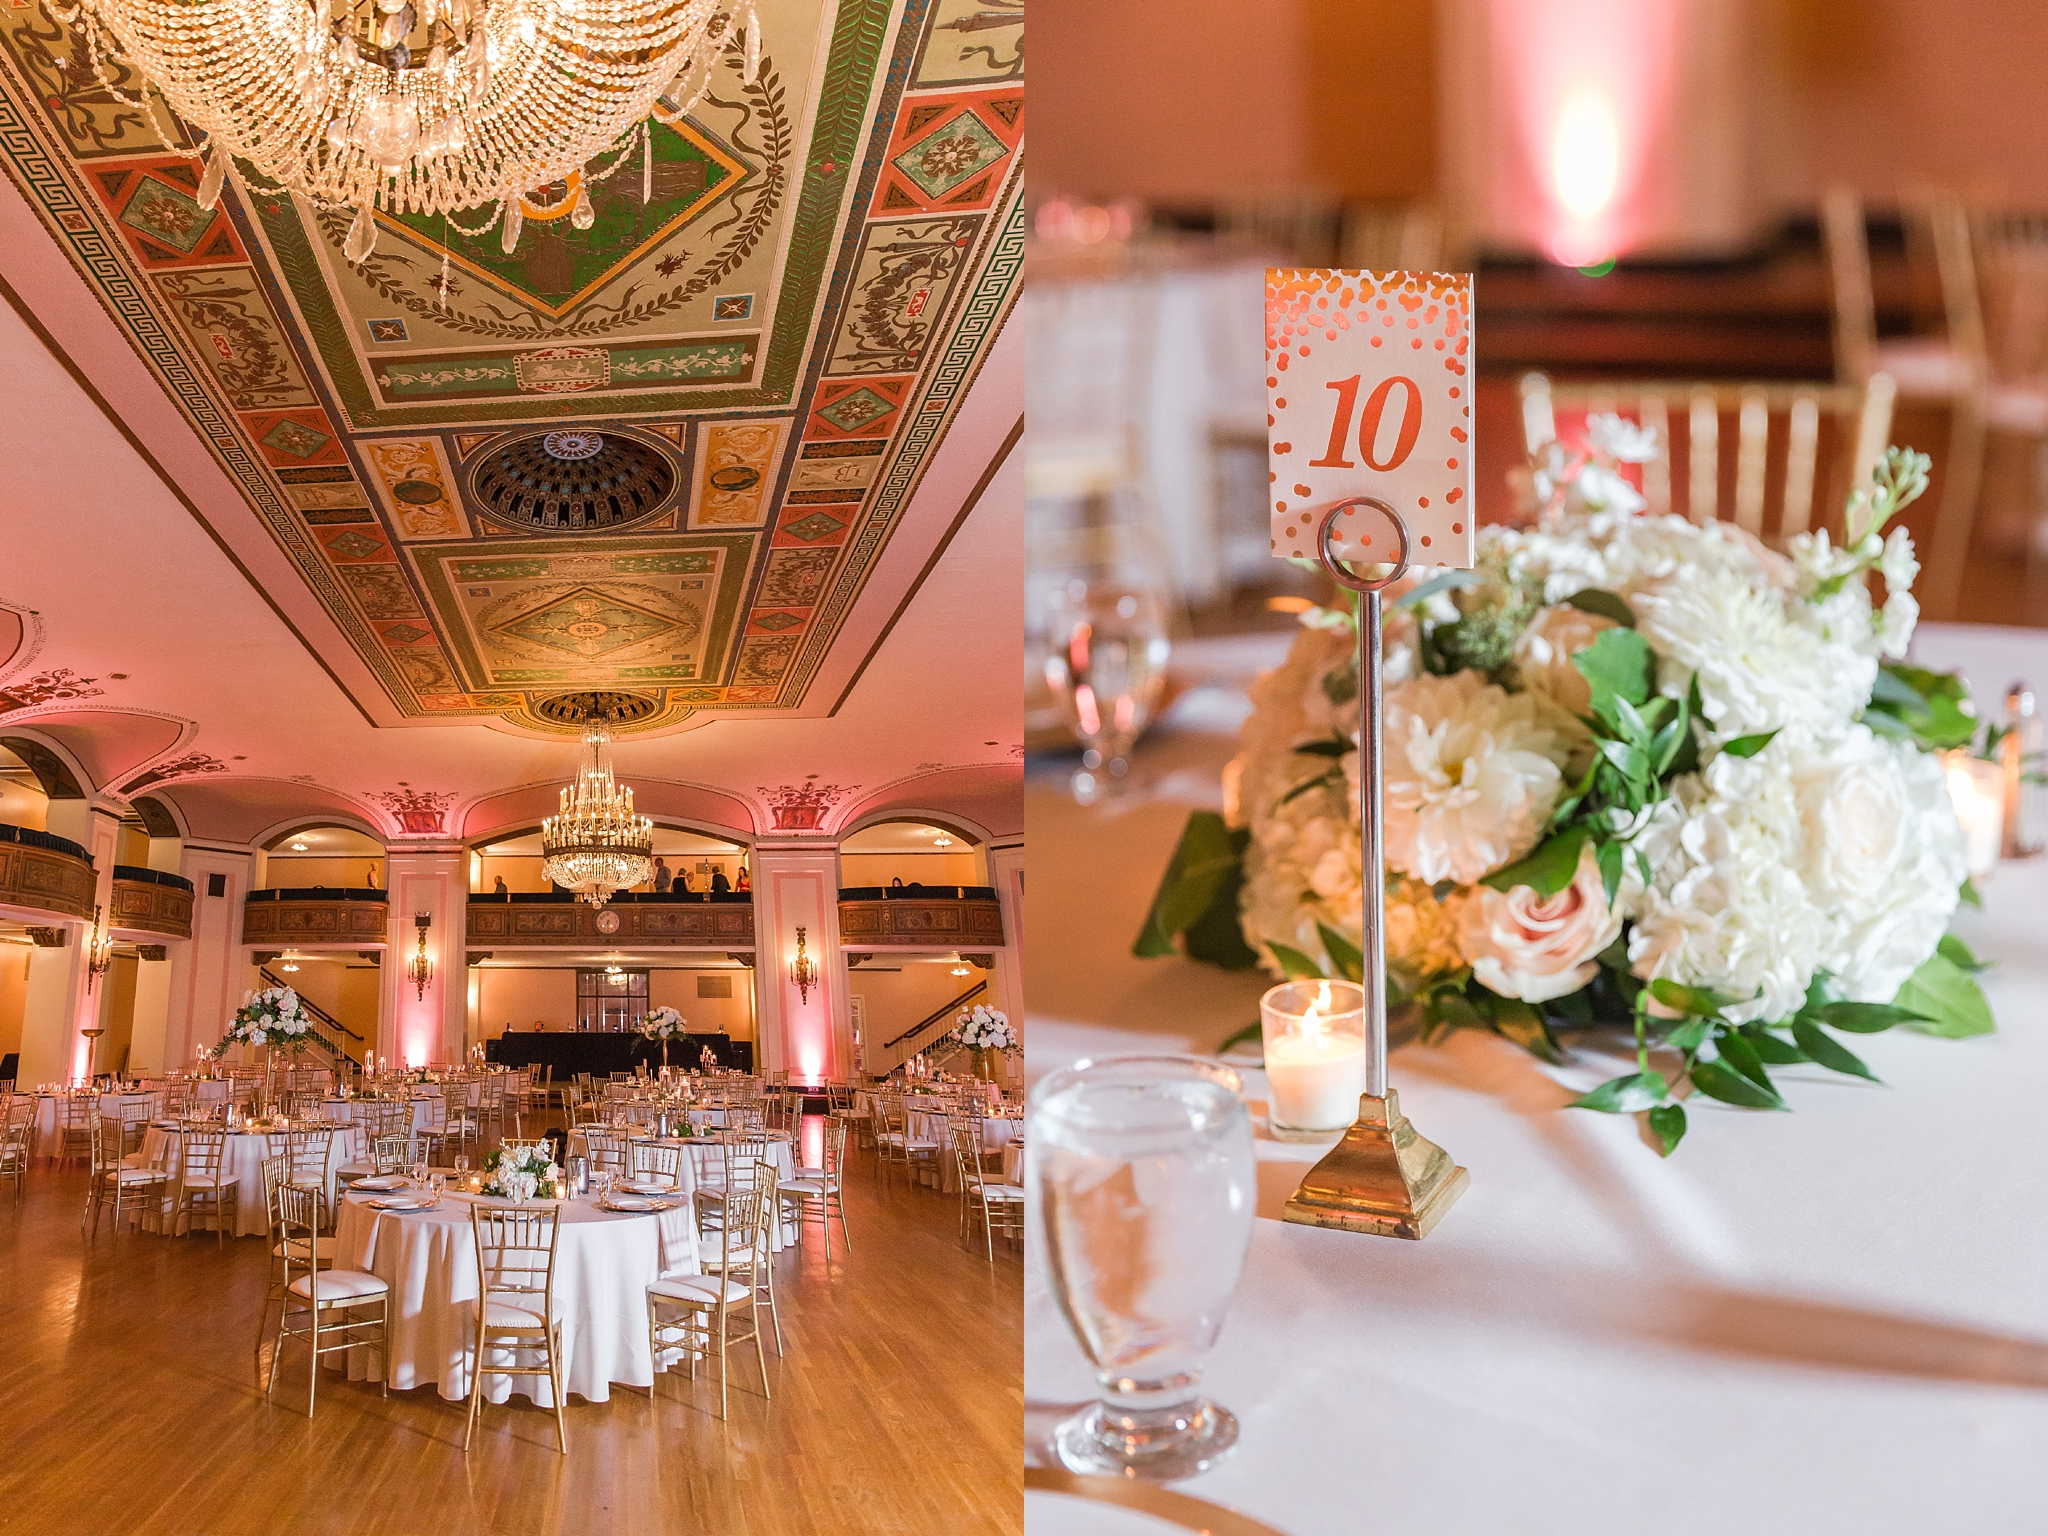 candid-romantic-wedding-photos-at-the-masonic-temple-belle-isle-detroit-institute-of-arts-in-detroit-michigan-by-courtney-carolyn-photography_0092.jpg